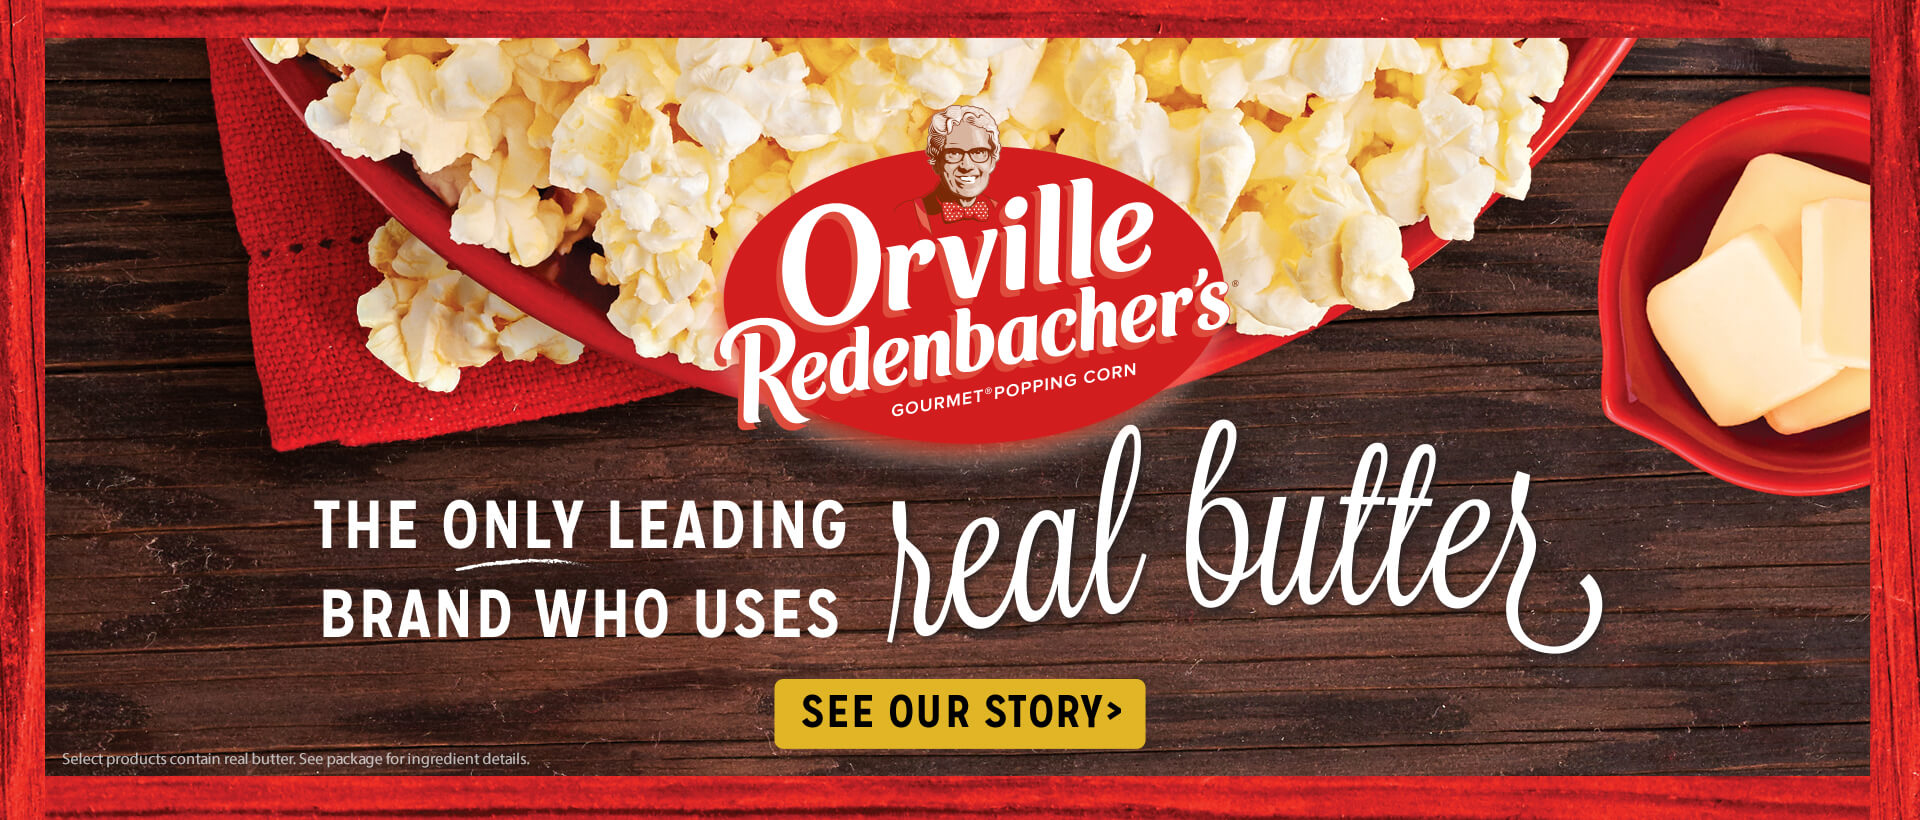 The only leading brand who uses real butter